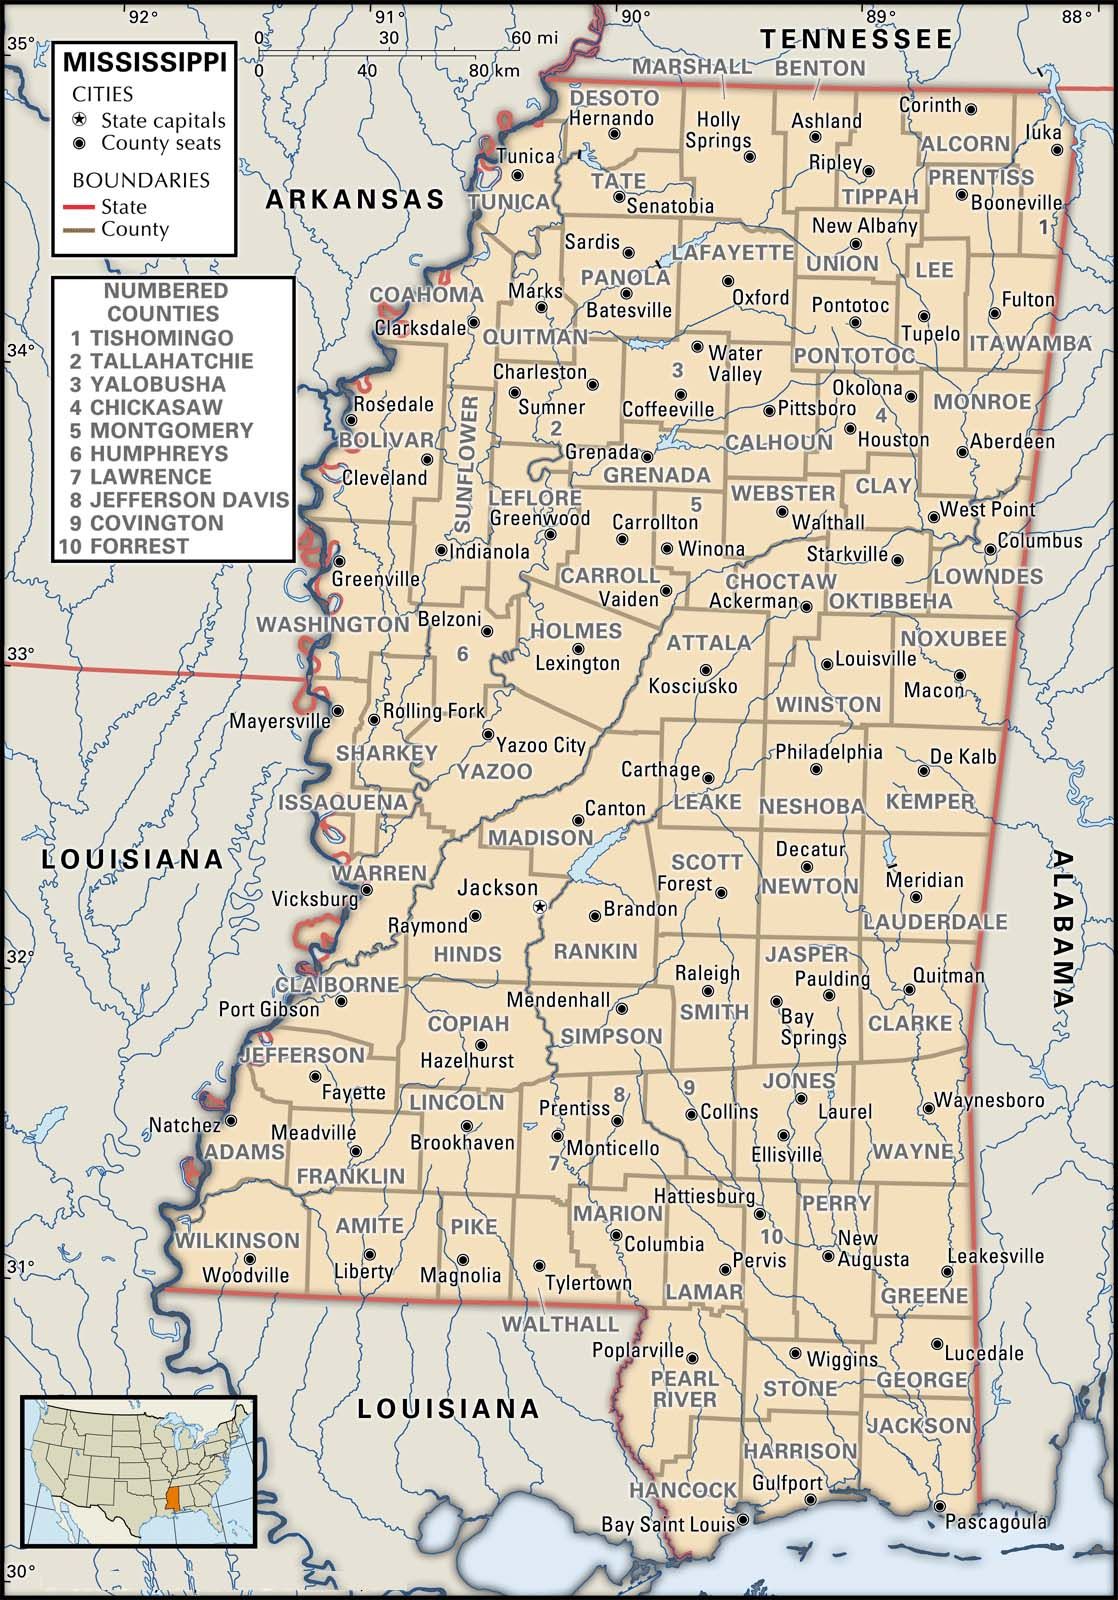 Adaptable image intended for printable map of mississippi